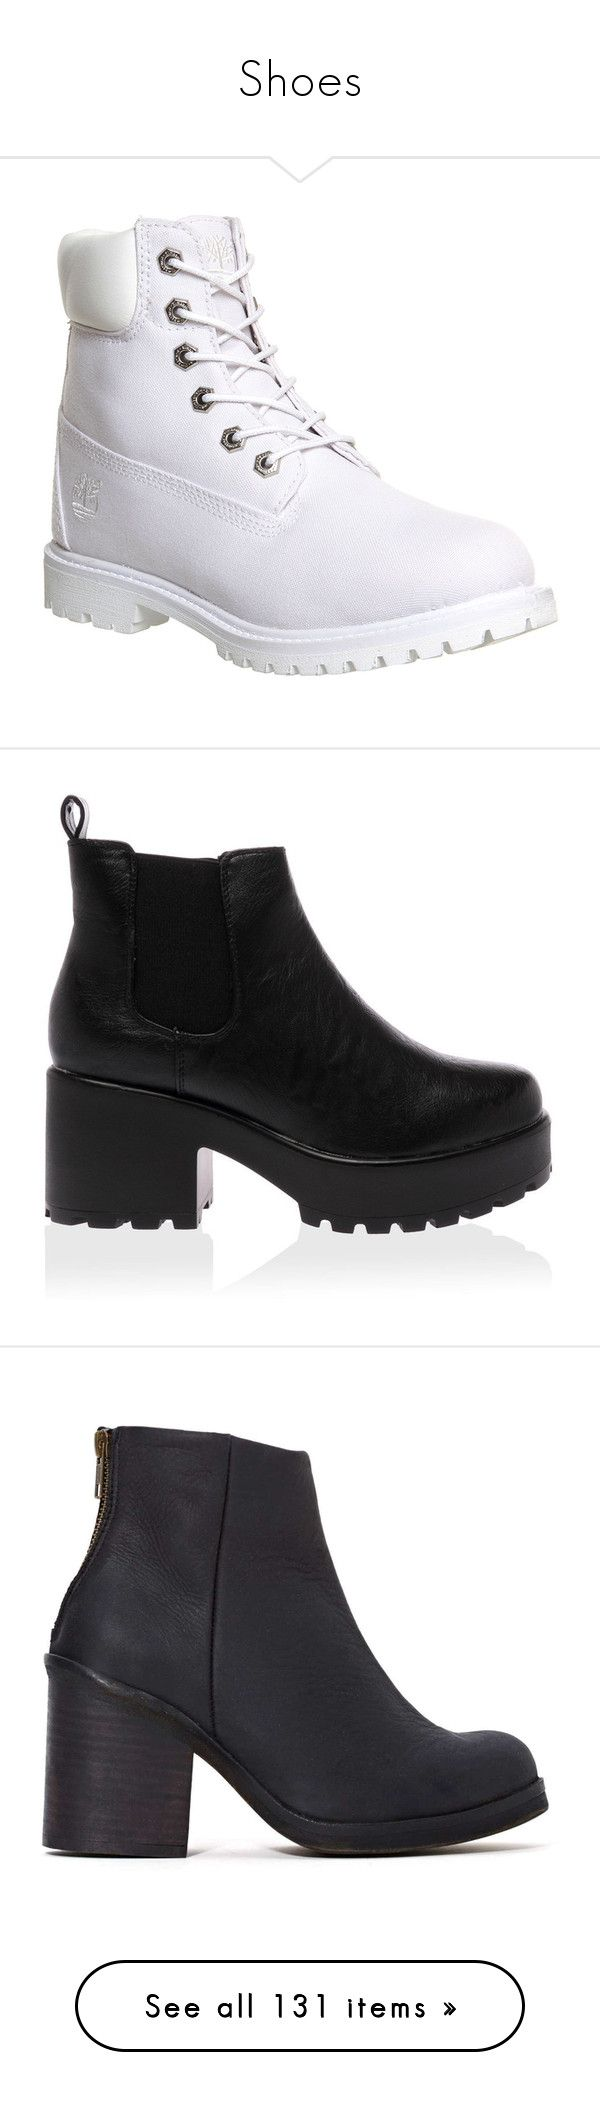 """""""Shoes"""" by cynthia-angel ❤ liked on Polyvore featuring shoes, boots, ankle booties, botas, timberlands, ankle boots, black laced booties, laced up ankle boots, long black boots and timberland boots"""